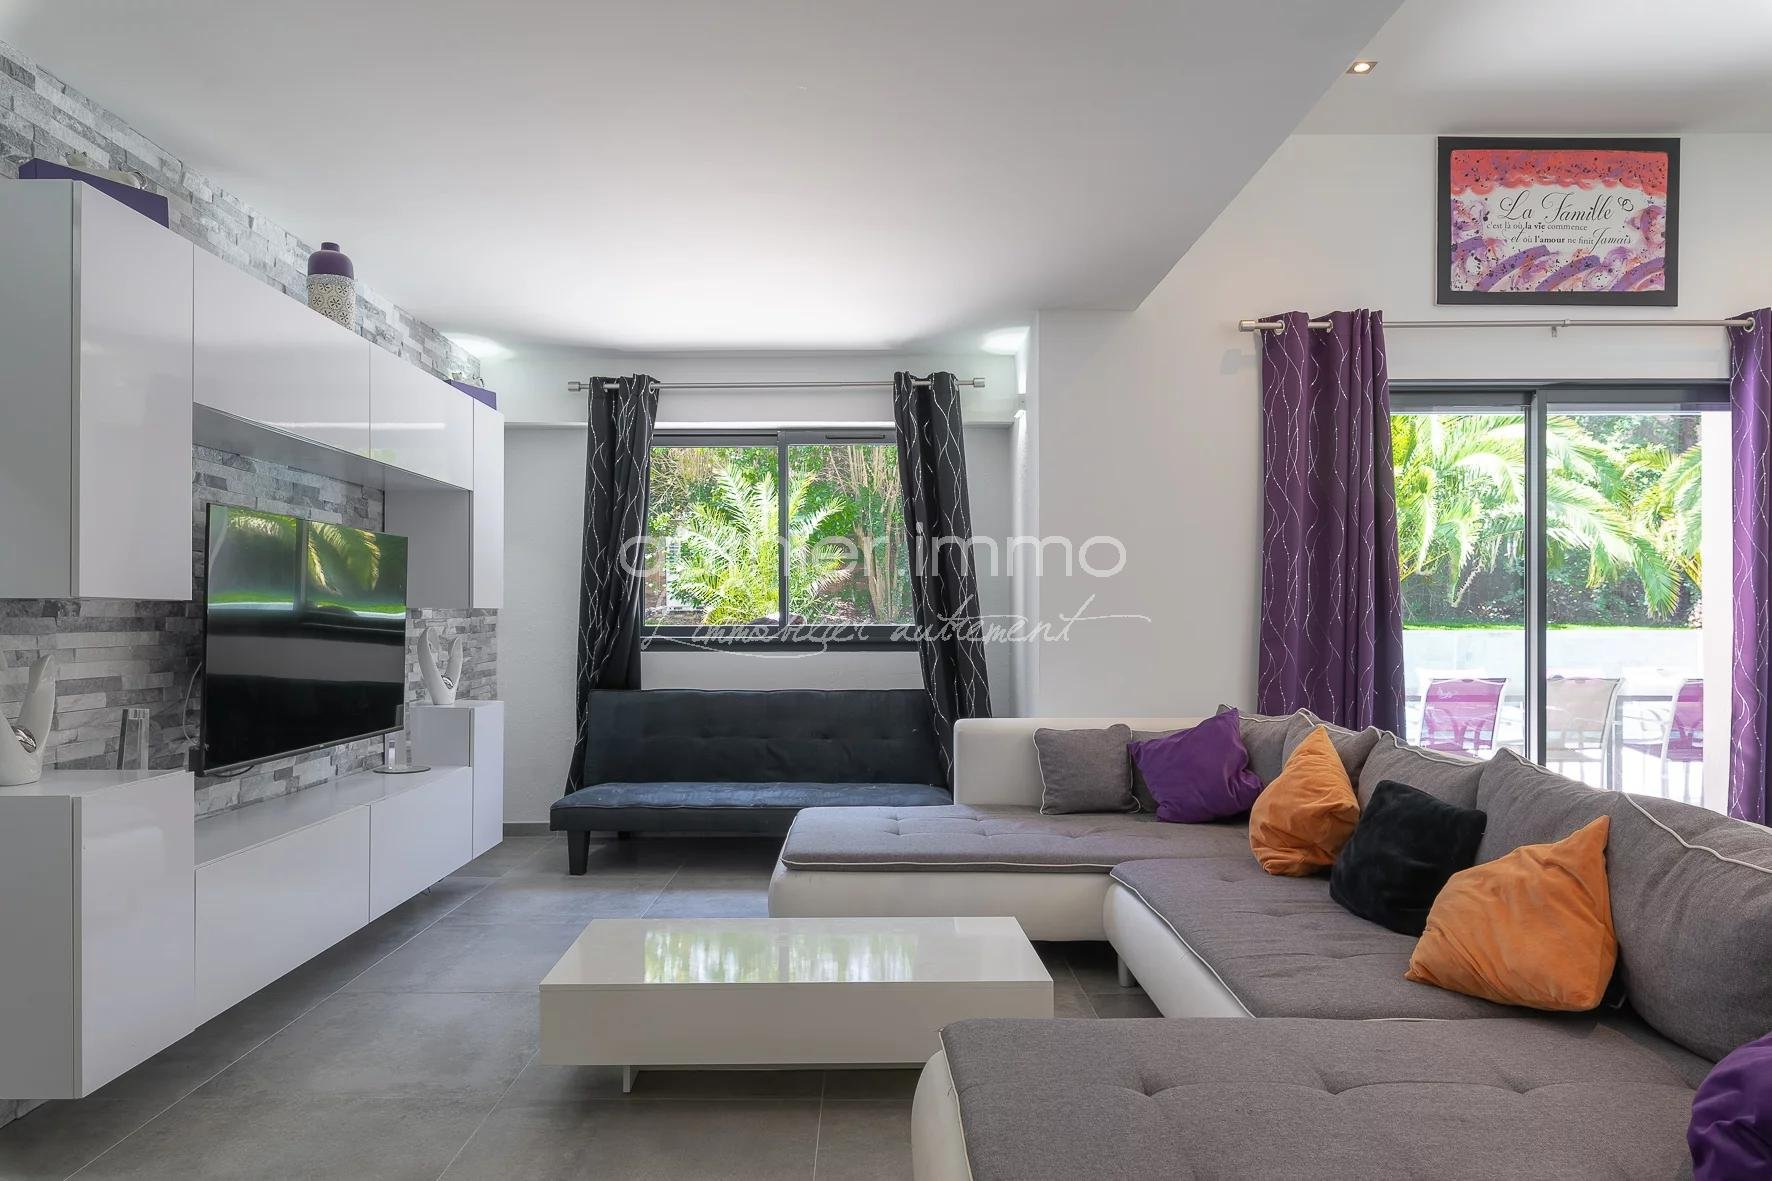 Renovated character villa for sale in a natural setting